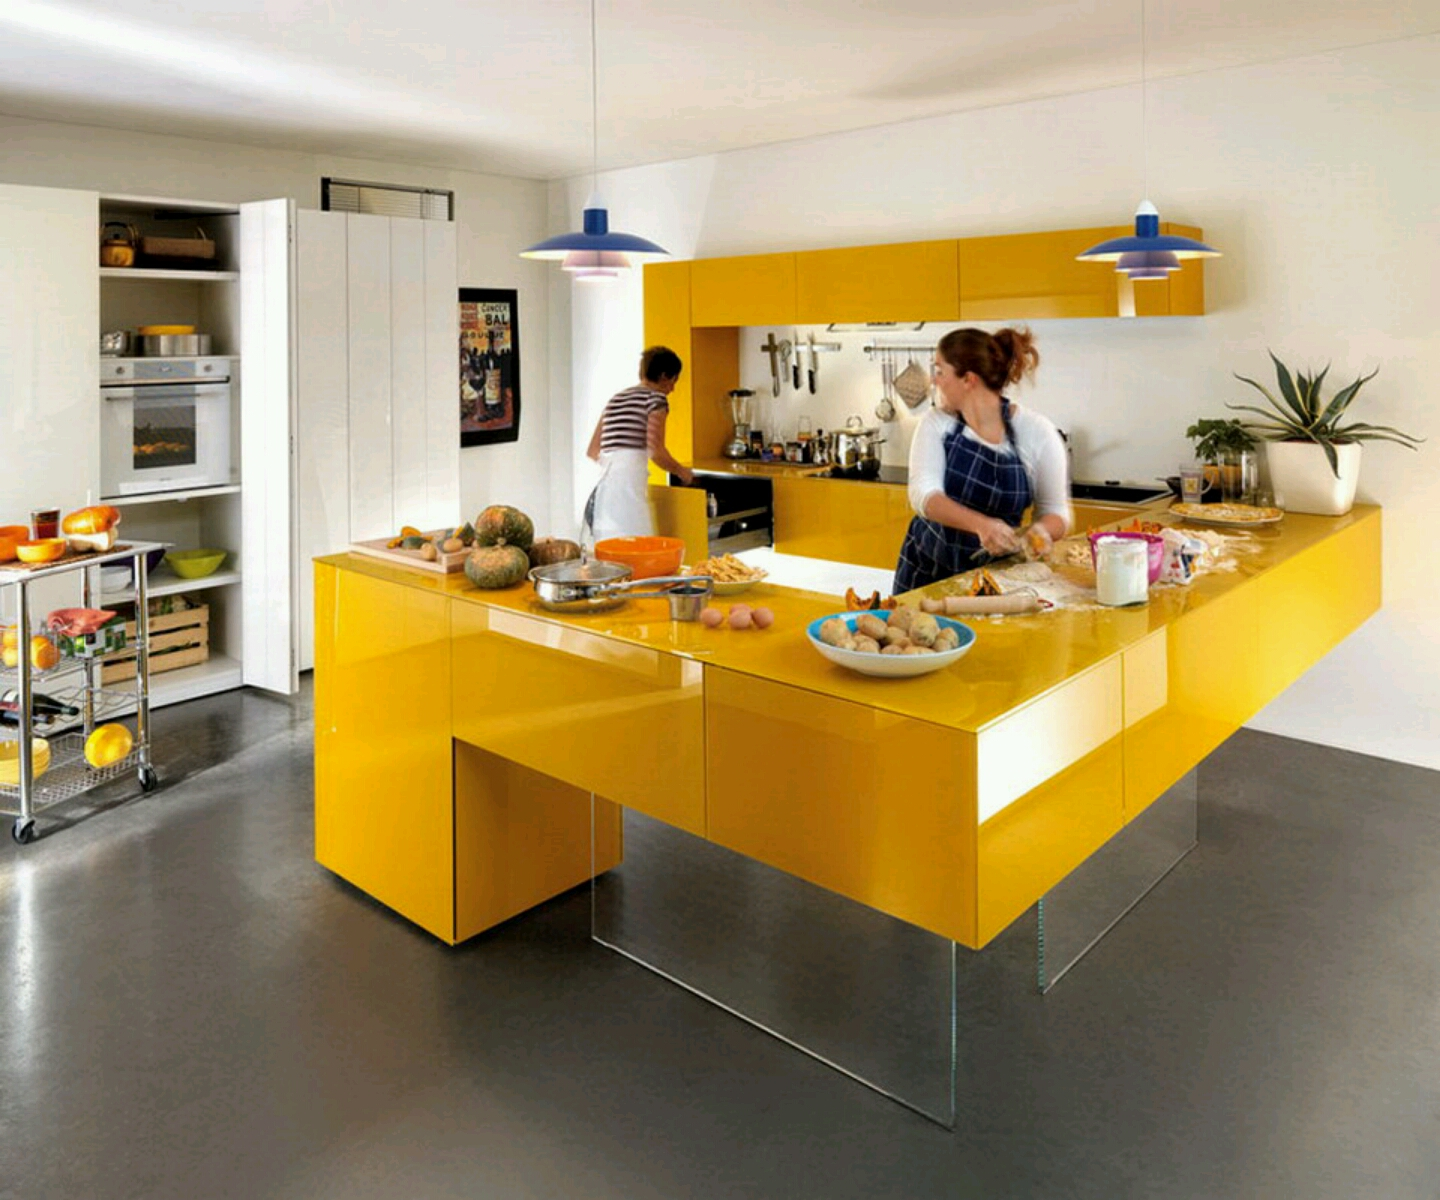 modern kitchen cabinets designs ideas furniture gallery On new design kitchen furniture